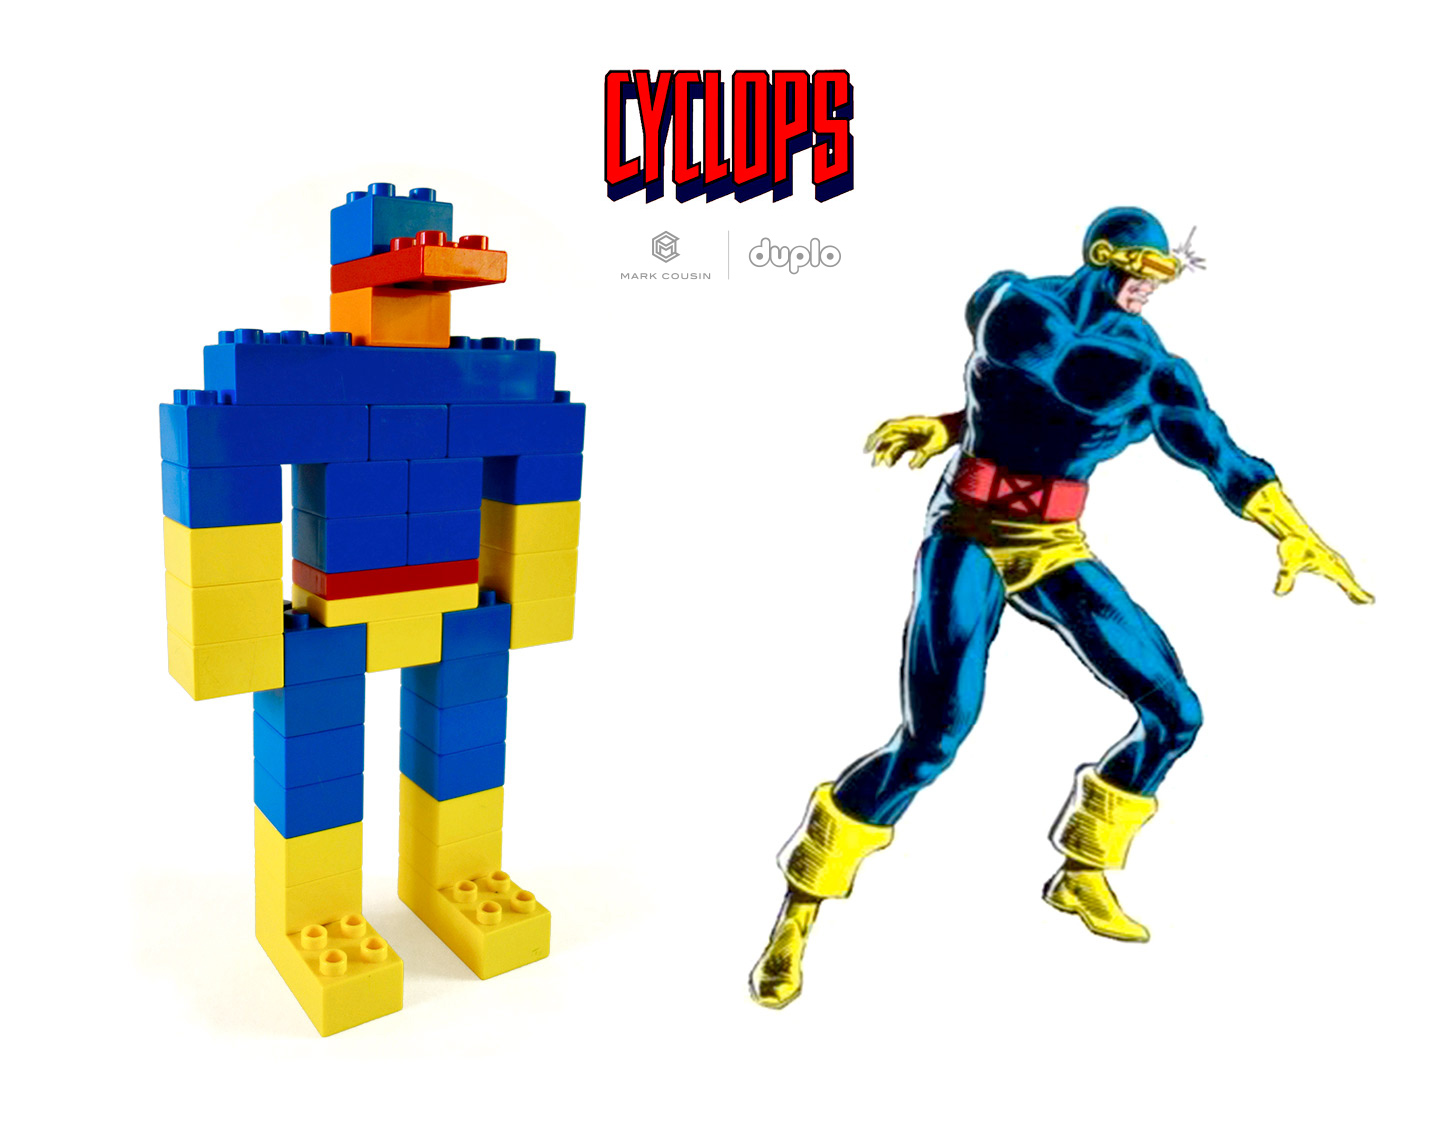 Cyclops_MC_Duplo